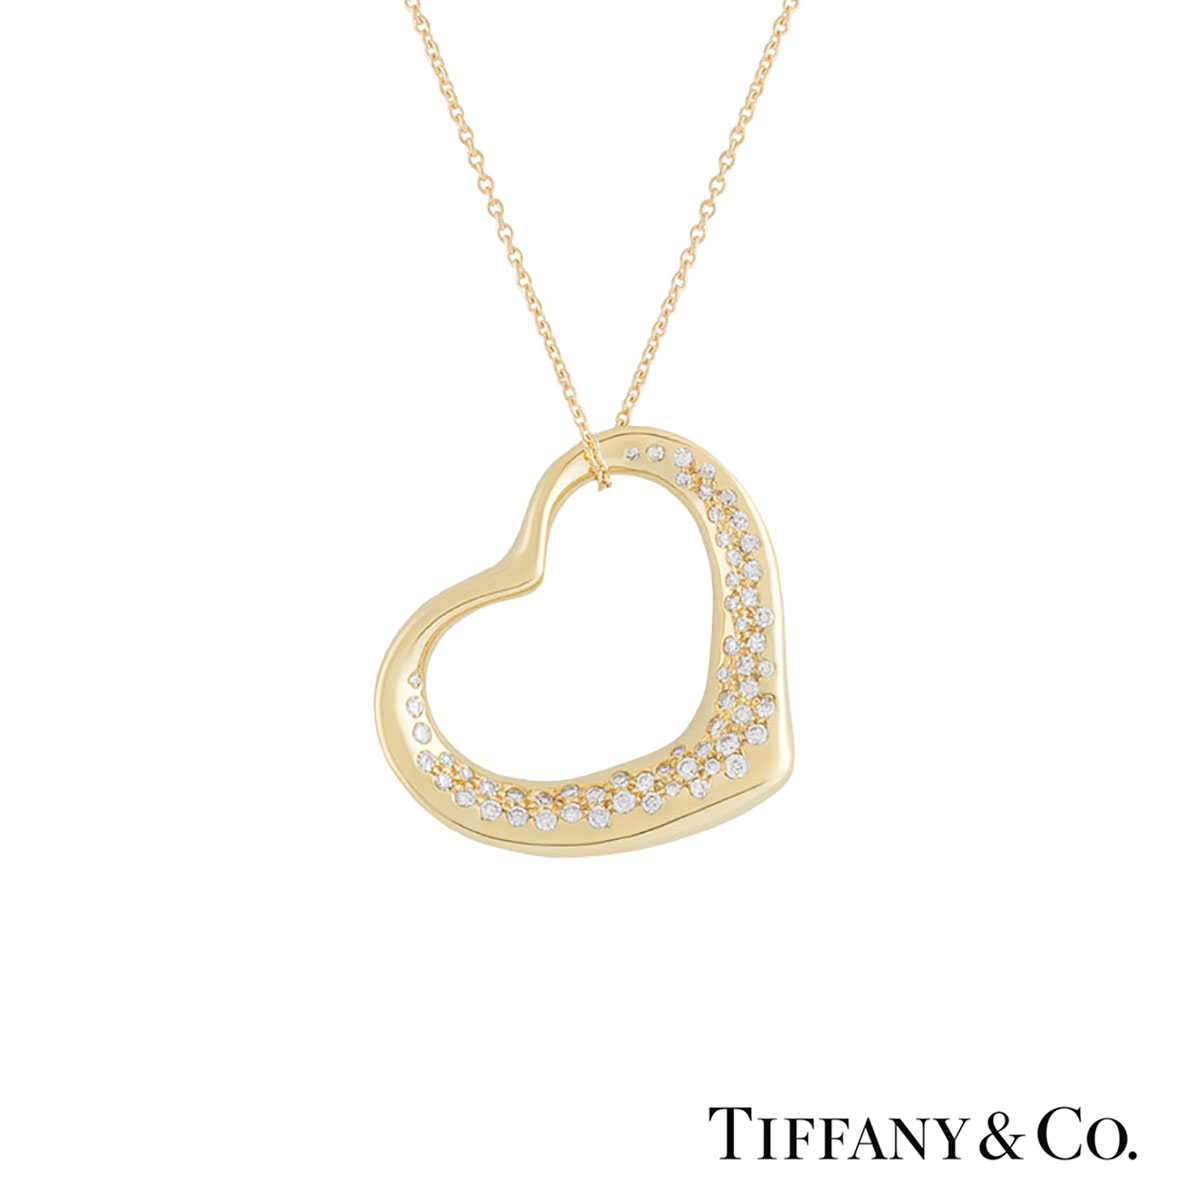 Tiffany & Co. Yellow Gold Diamond Elsa Peretti Necklace 0.42ct G/VS